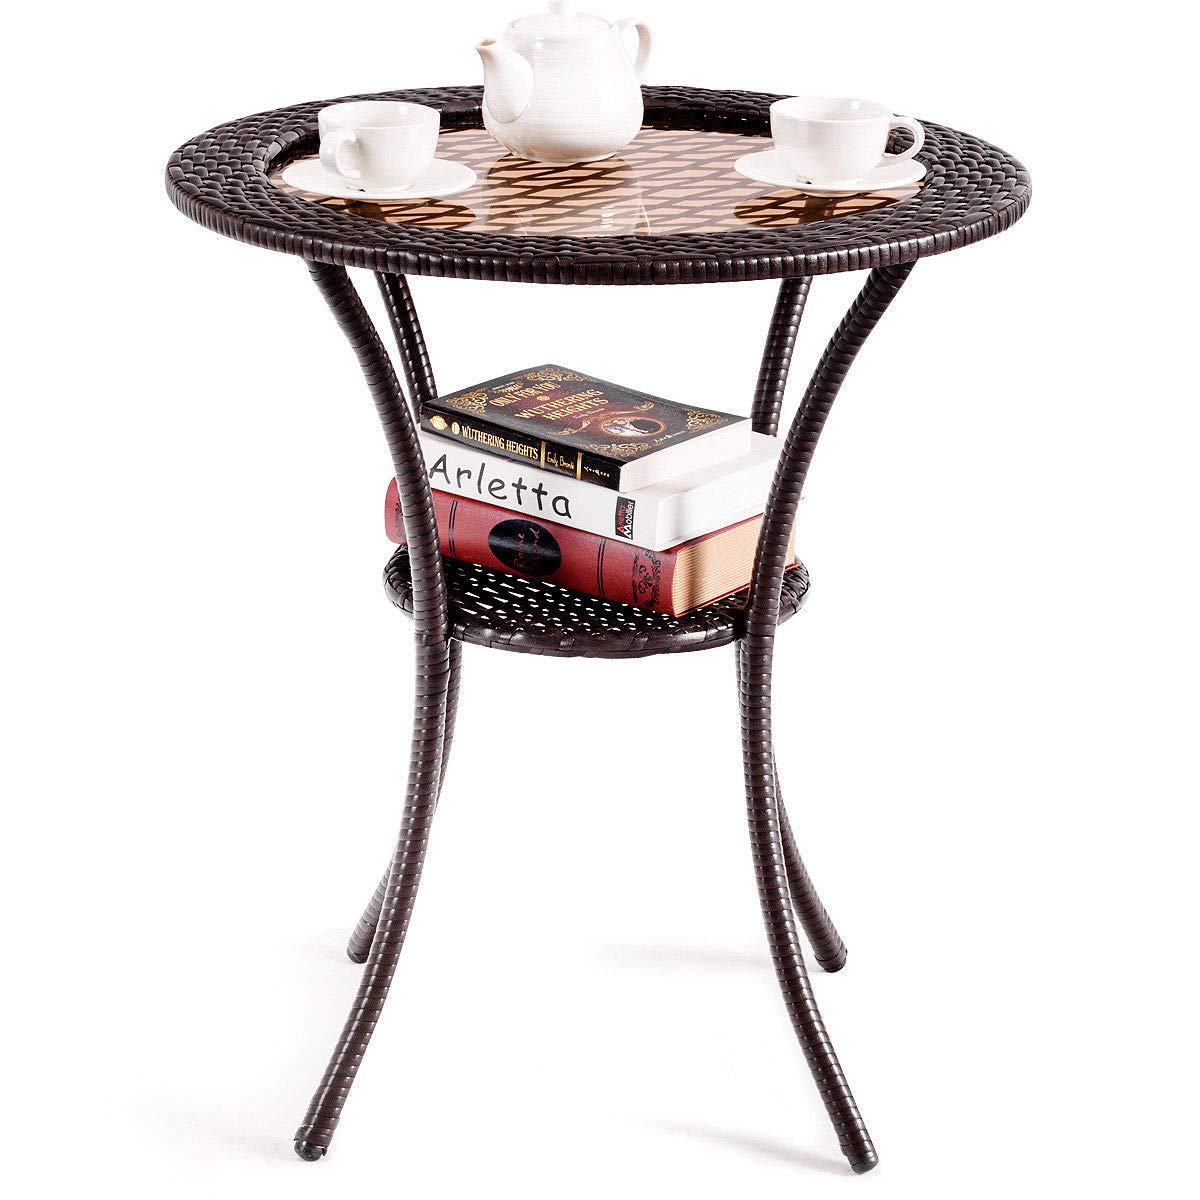 giantex round rattan wicker coffee table glass top crkl end tables with steel frame patio furni lower shelf garden outdoor big lots kitchen furniture brass base ashley slate